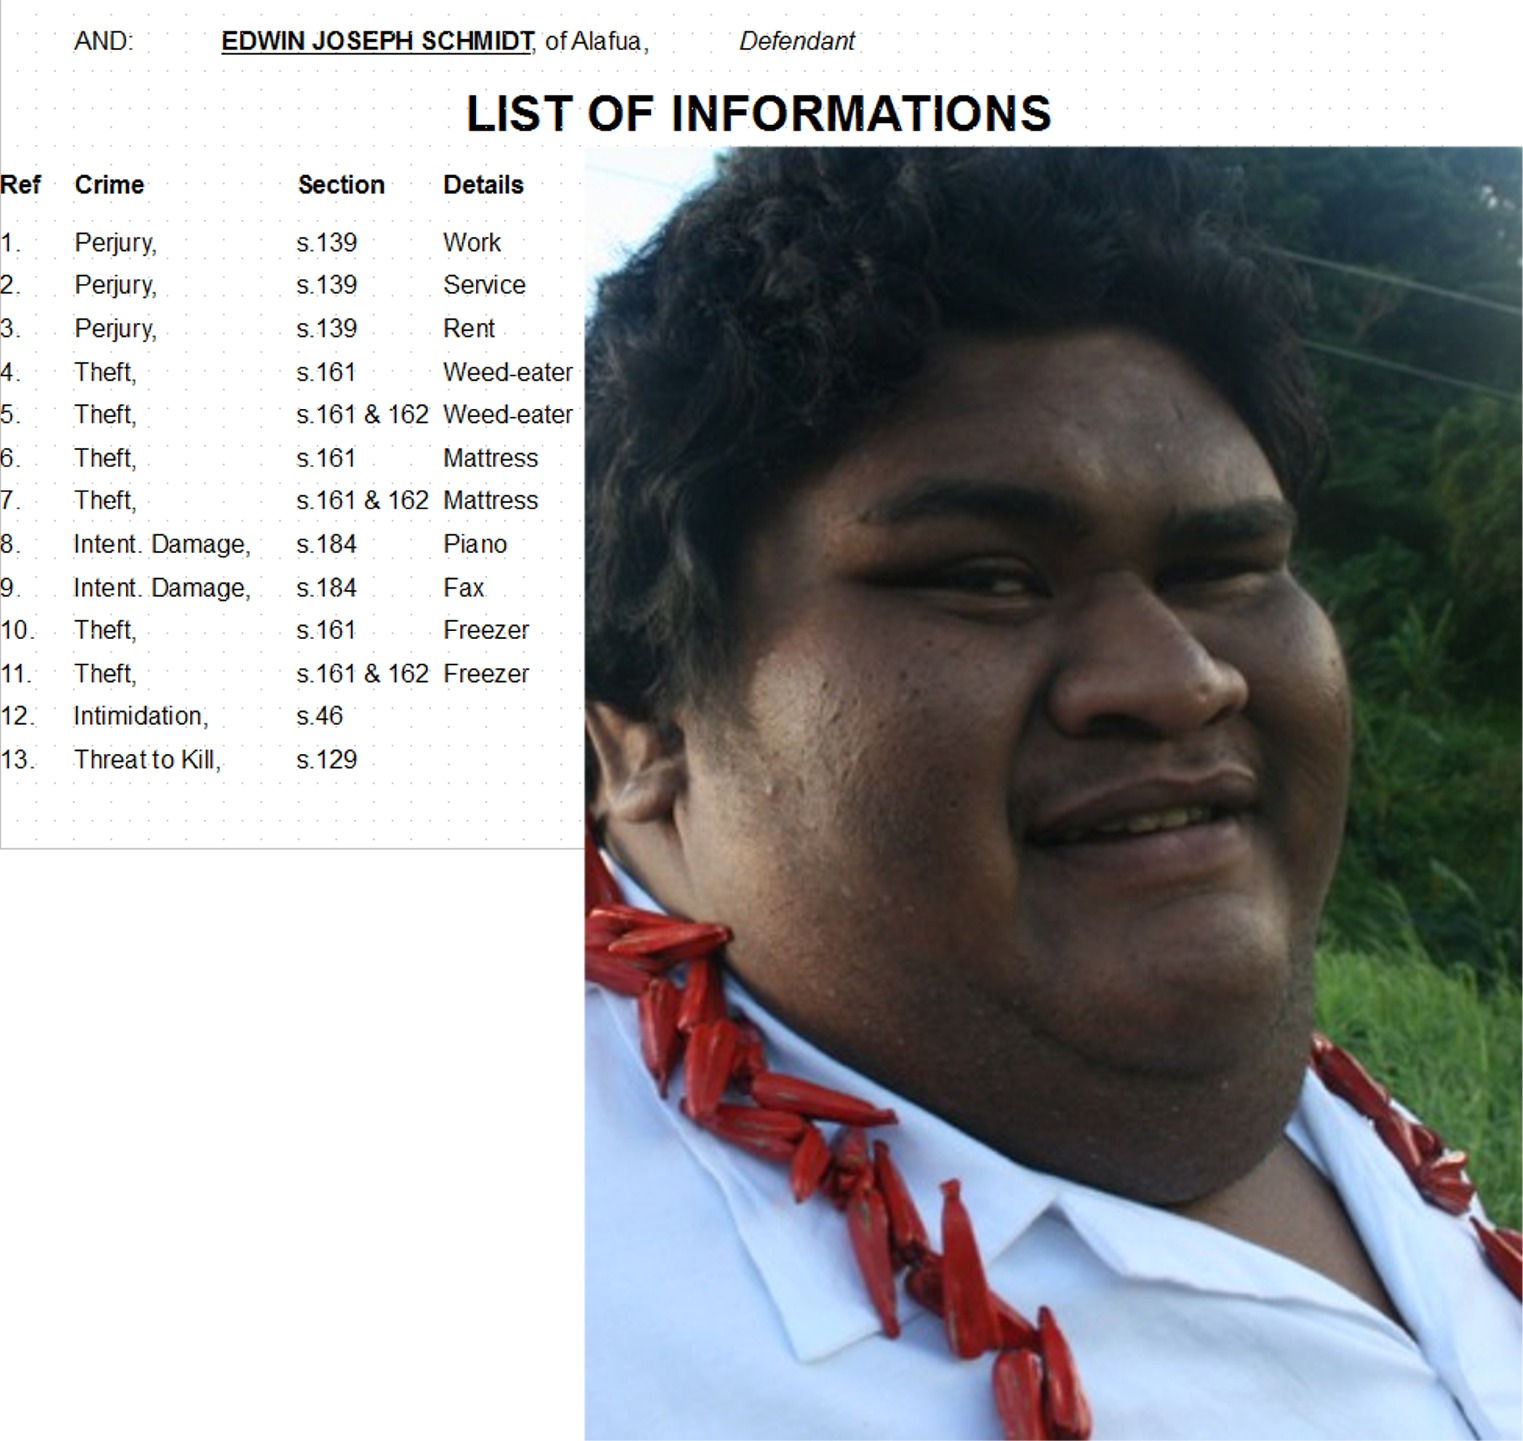 Private Prosecutions in Samoa